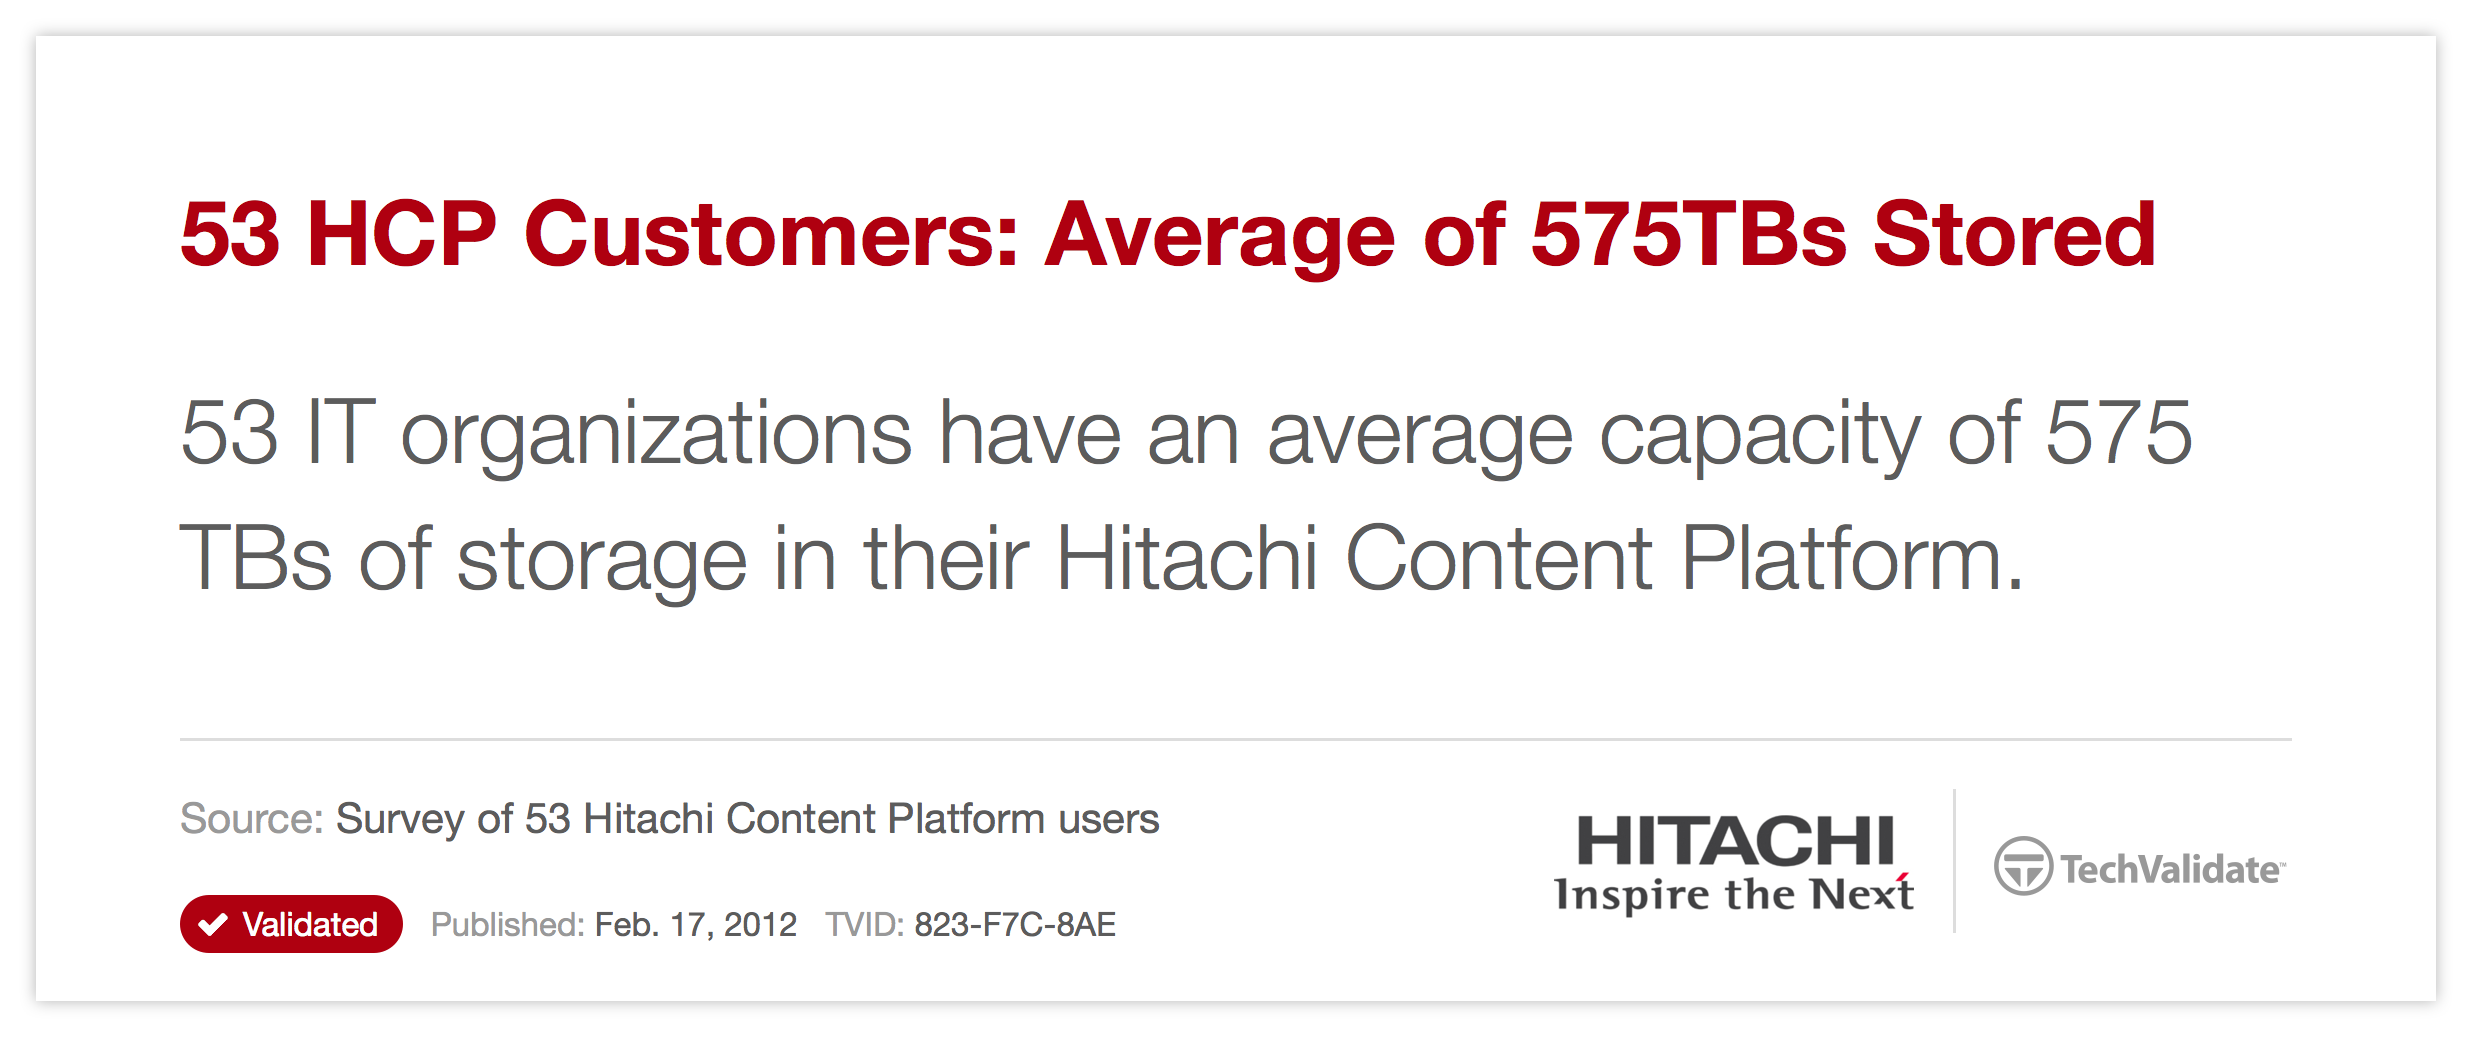 53 HCP Customers: Average of 575TBs Stored